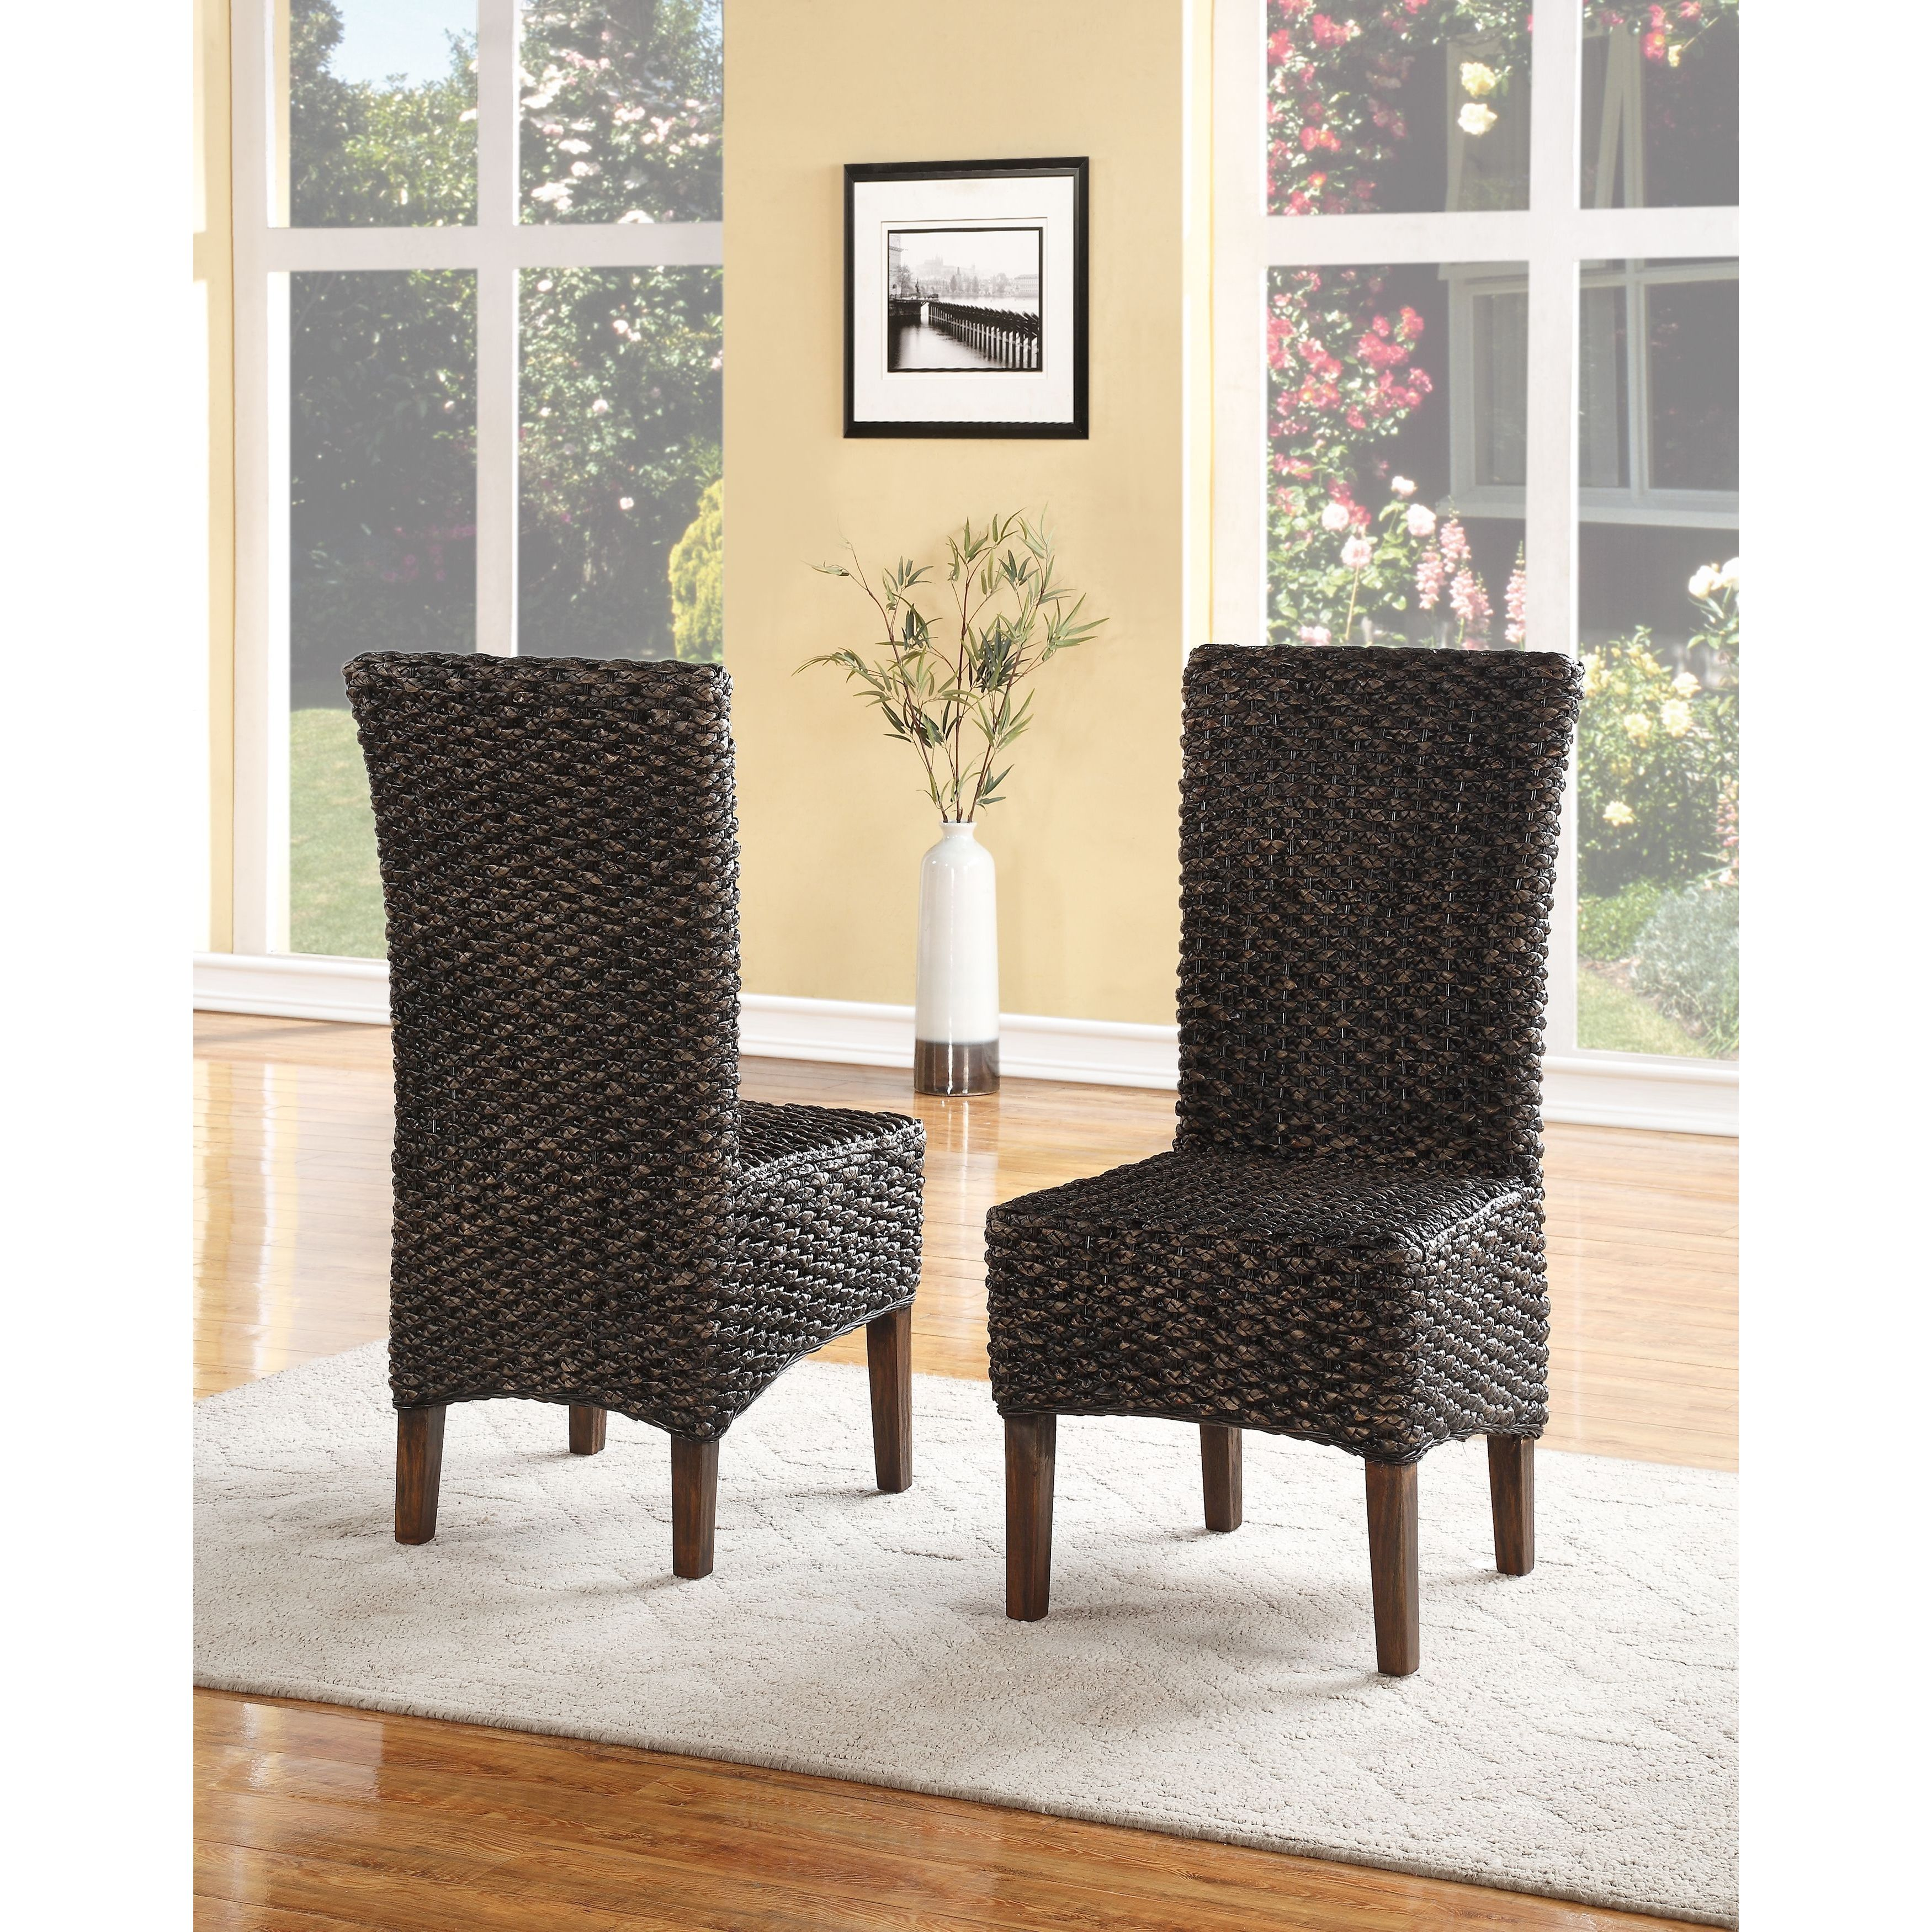 Domusindo Seagrass Dining Chair (set of 2) (Set of 2), Br...